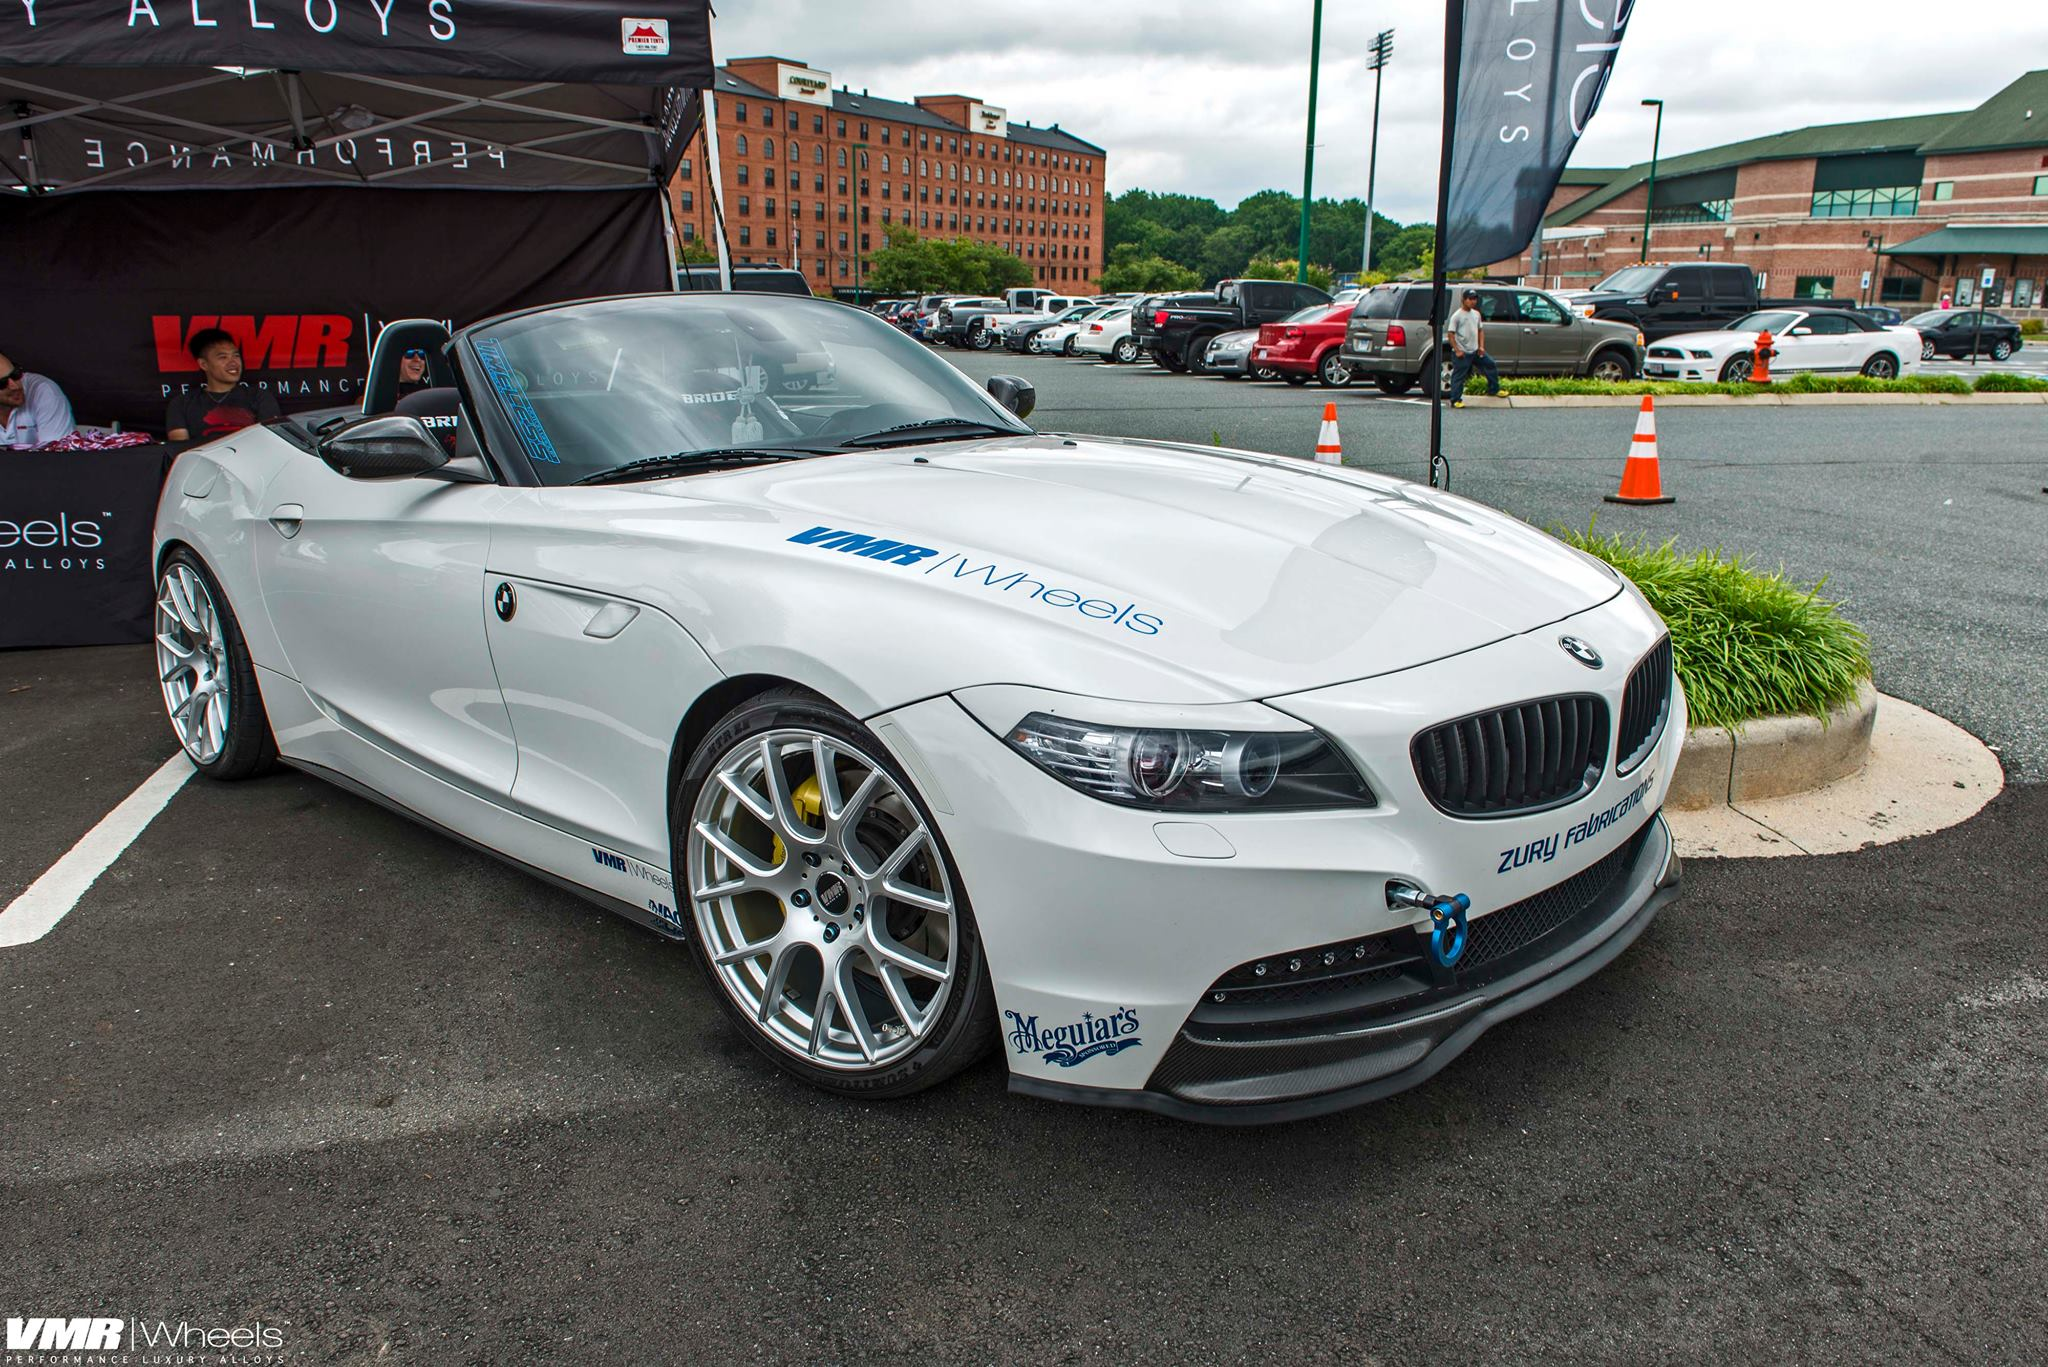 2009 Bmw Z4 (e89) - pictures, information and specs - Auto-Database.com